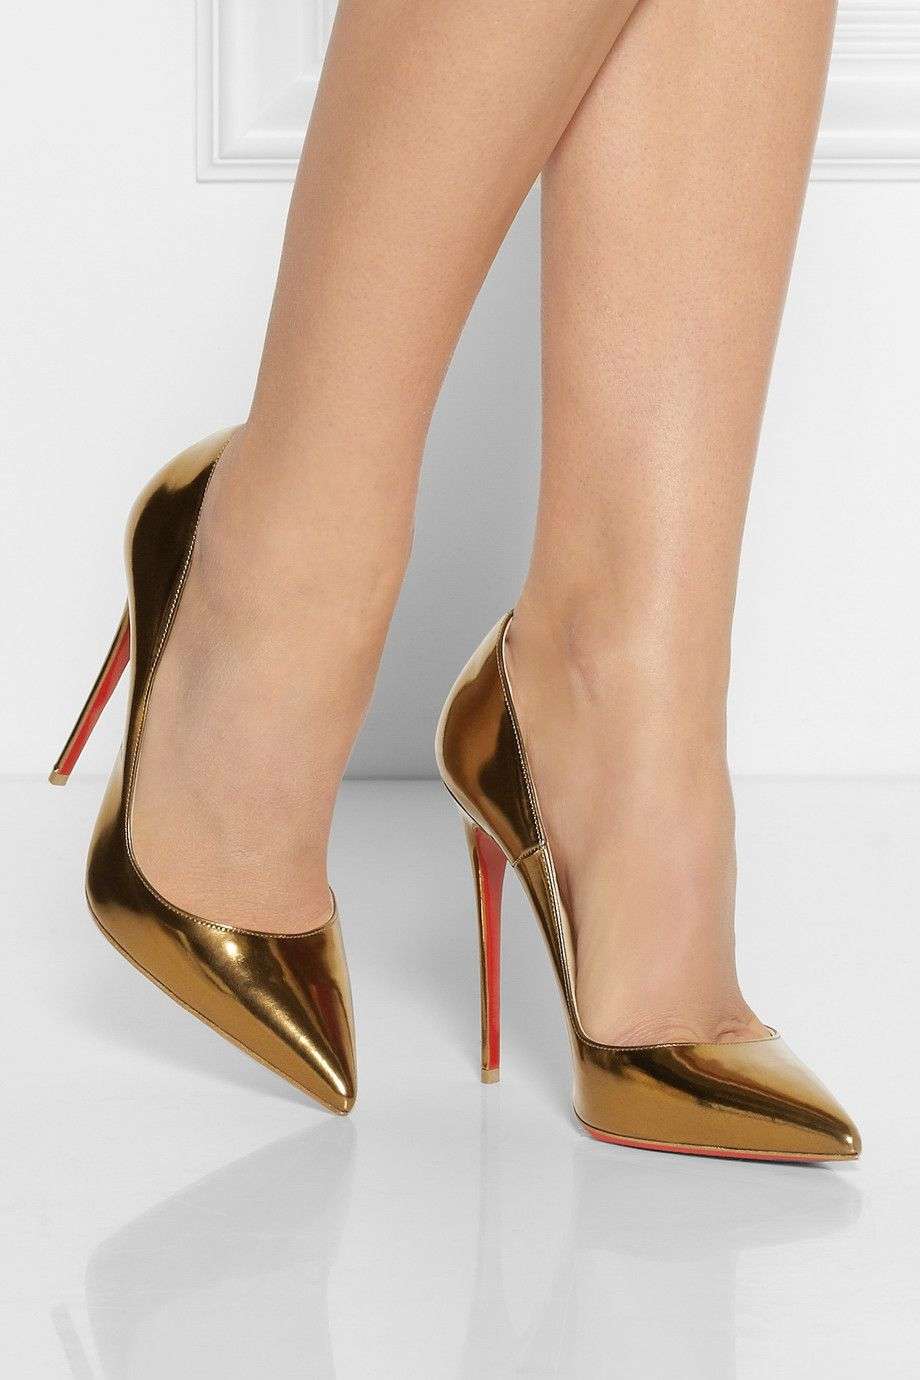 sale cheap free shipping 100% guaranteed Christian Louboutin Metallic So Kate 120 Pumps finishline cheap online discount visa payment cheap sale popular CbWuO1FG75